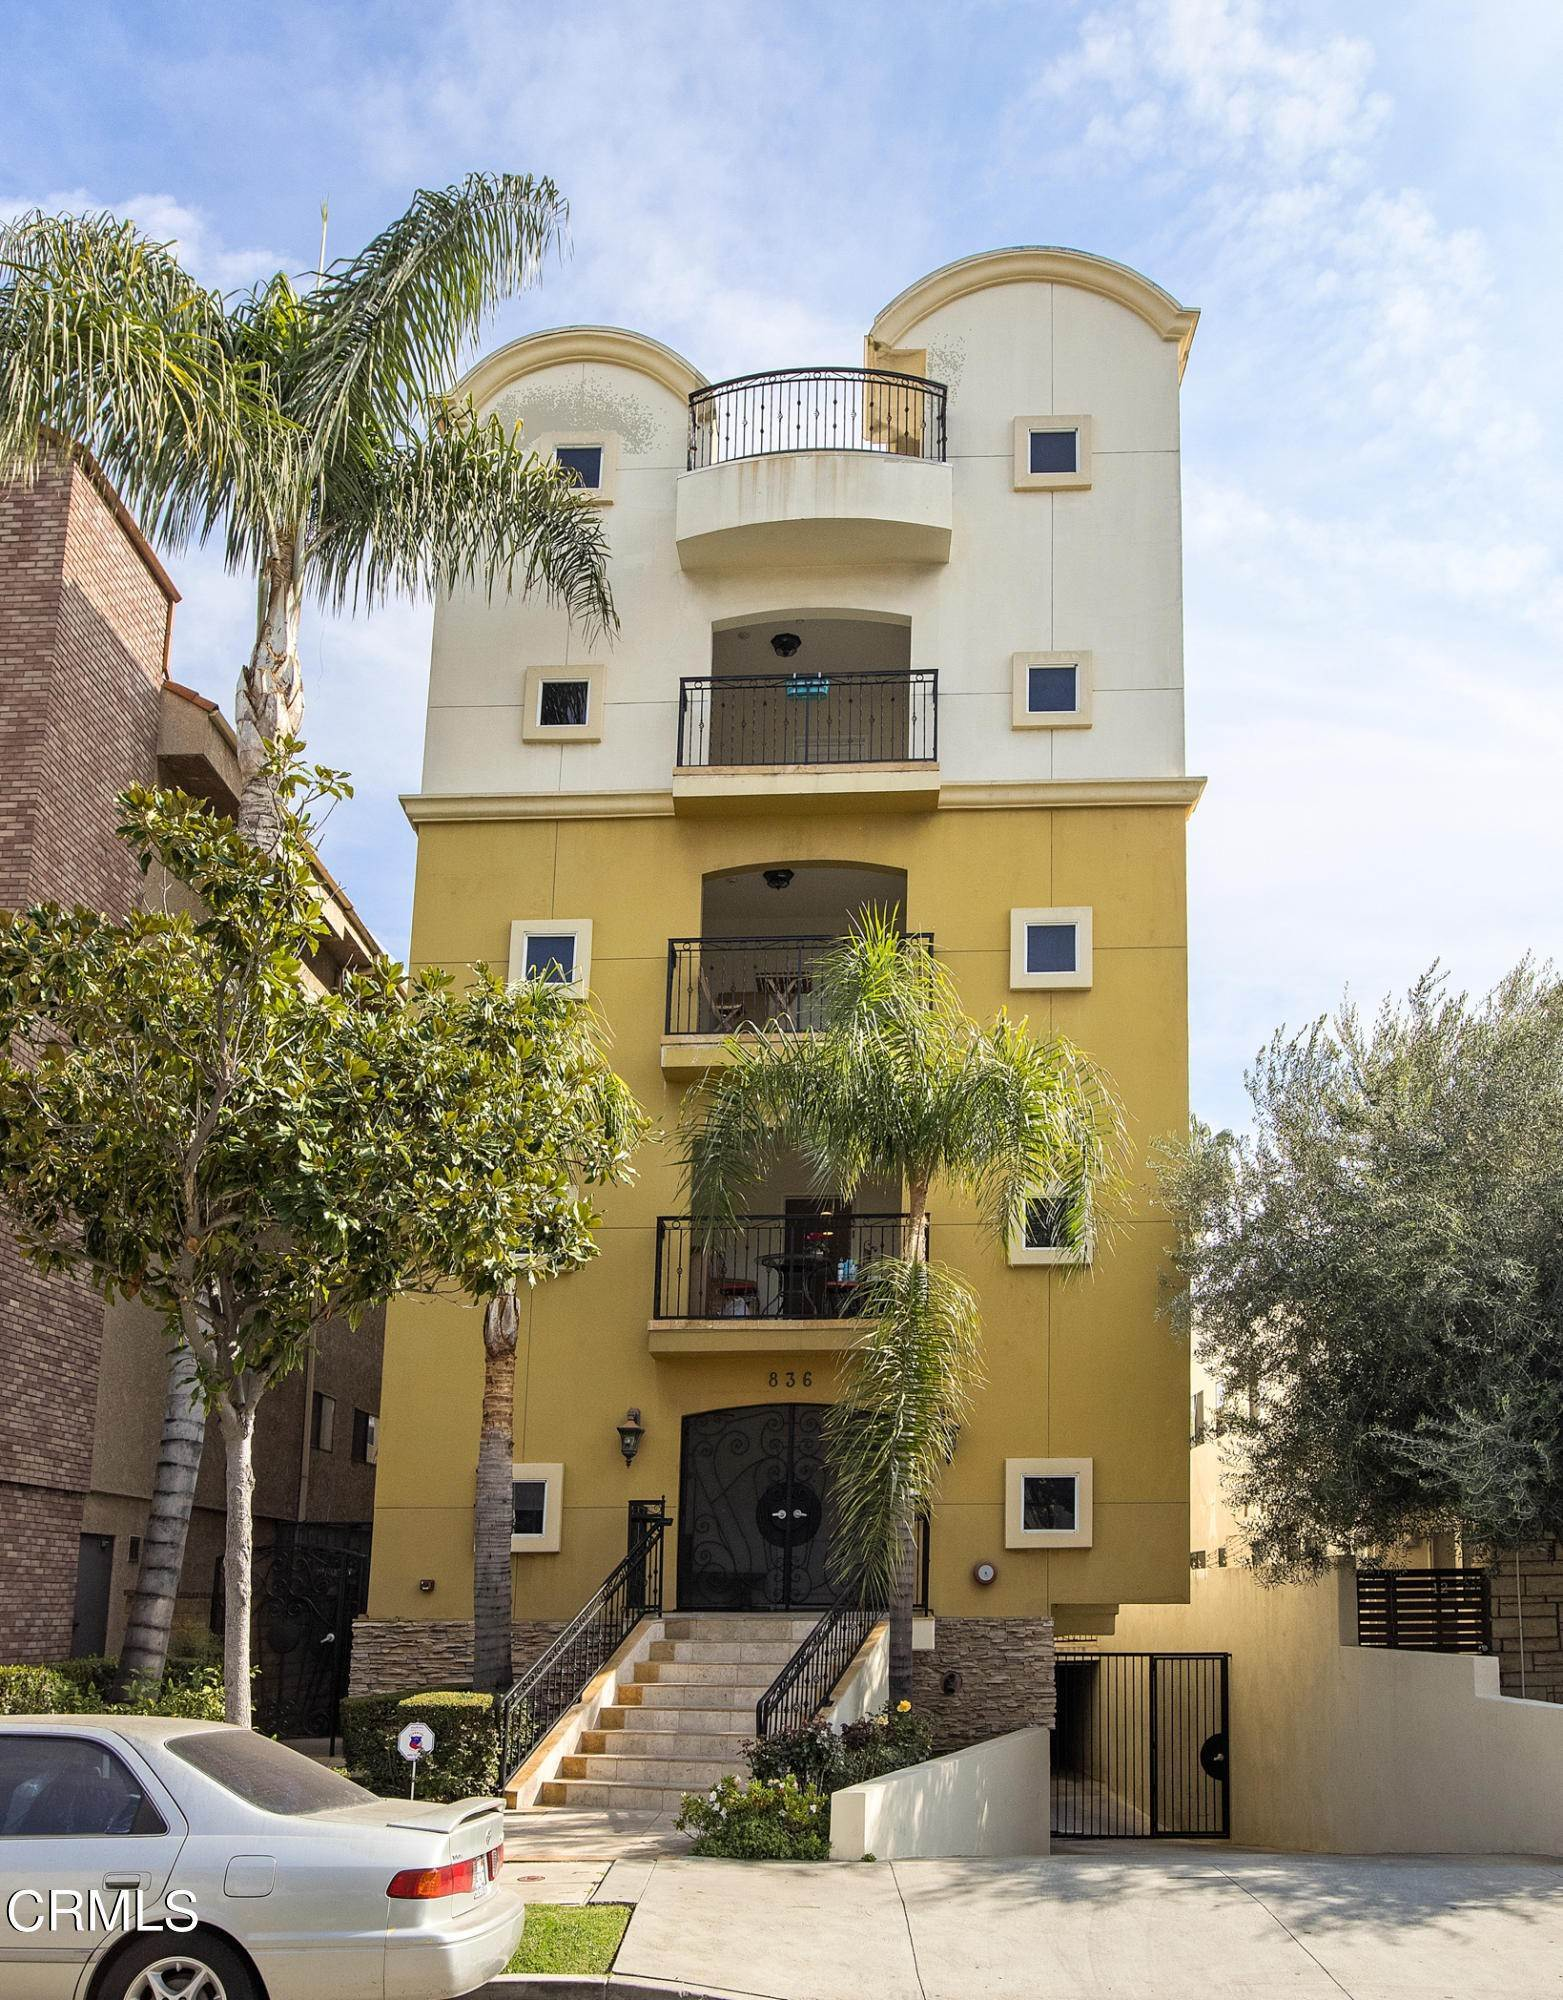 Condominiums for Sale at 836 South Bedford Street #200 836 South Bedford Street Los Angeles, California 90035 United States